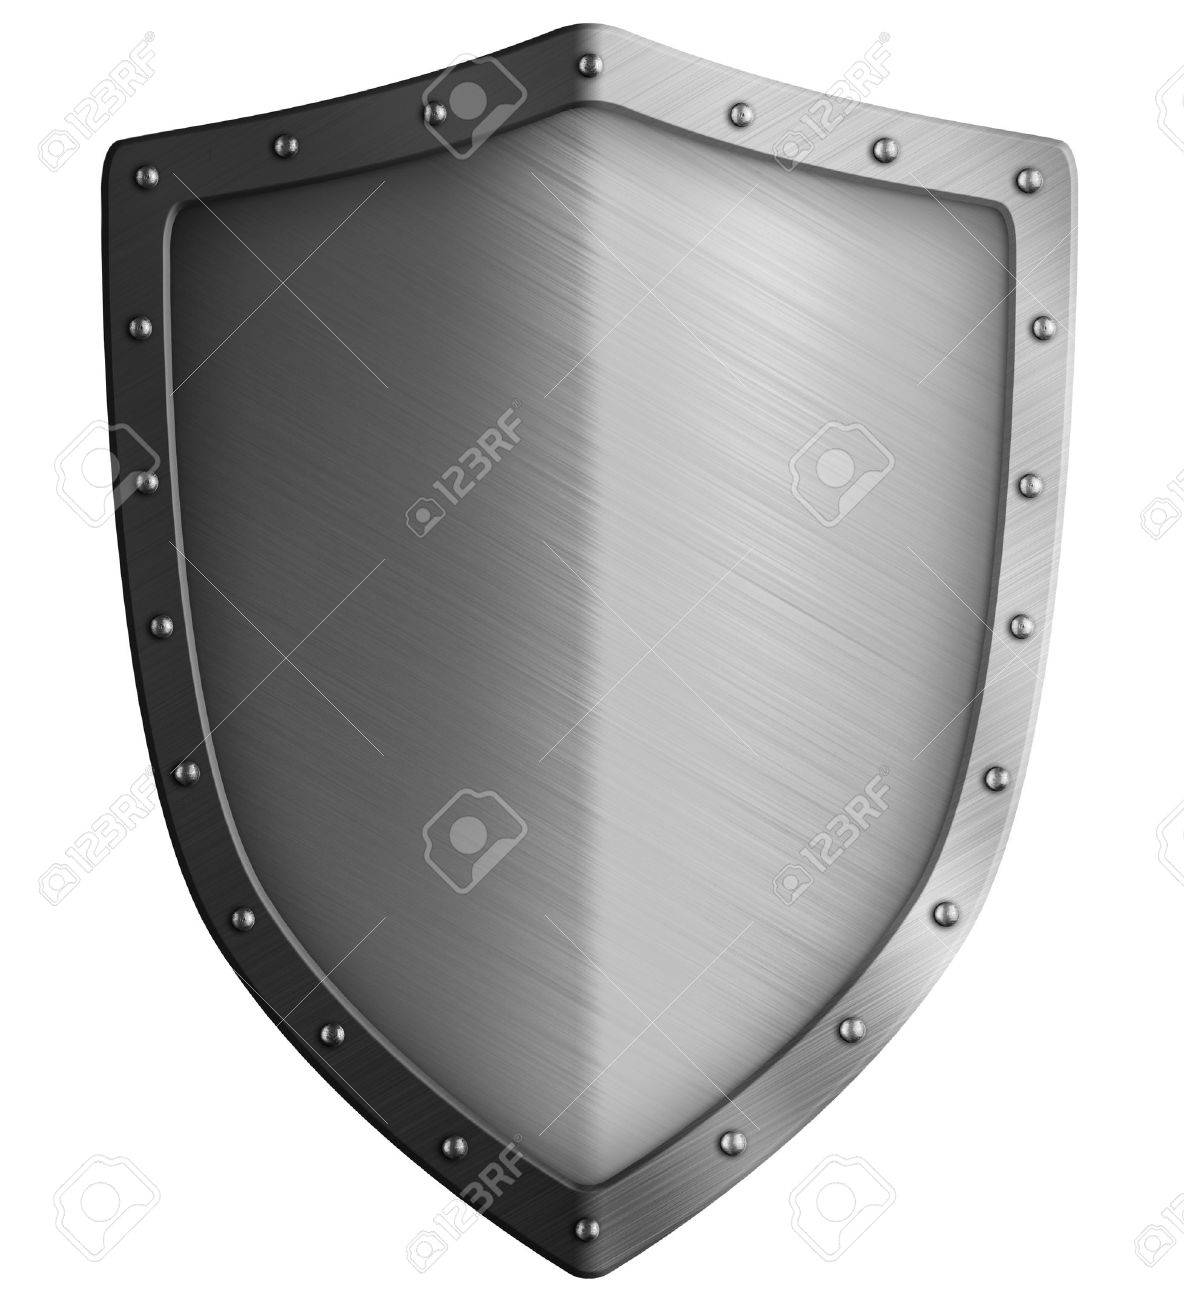 Big metal shield isolated on white 3d illustration - 56494757